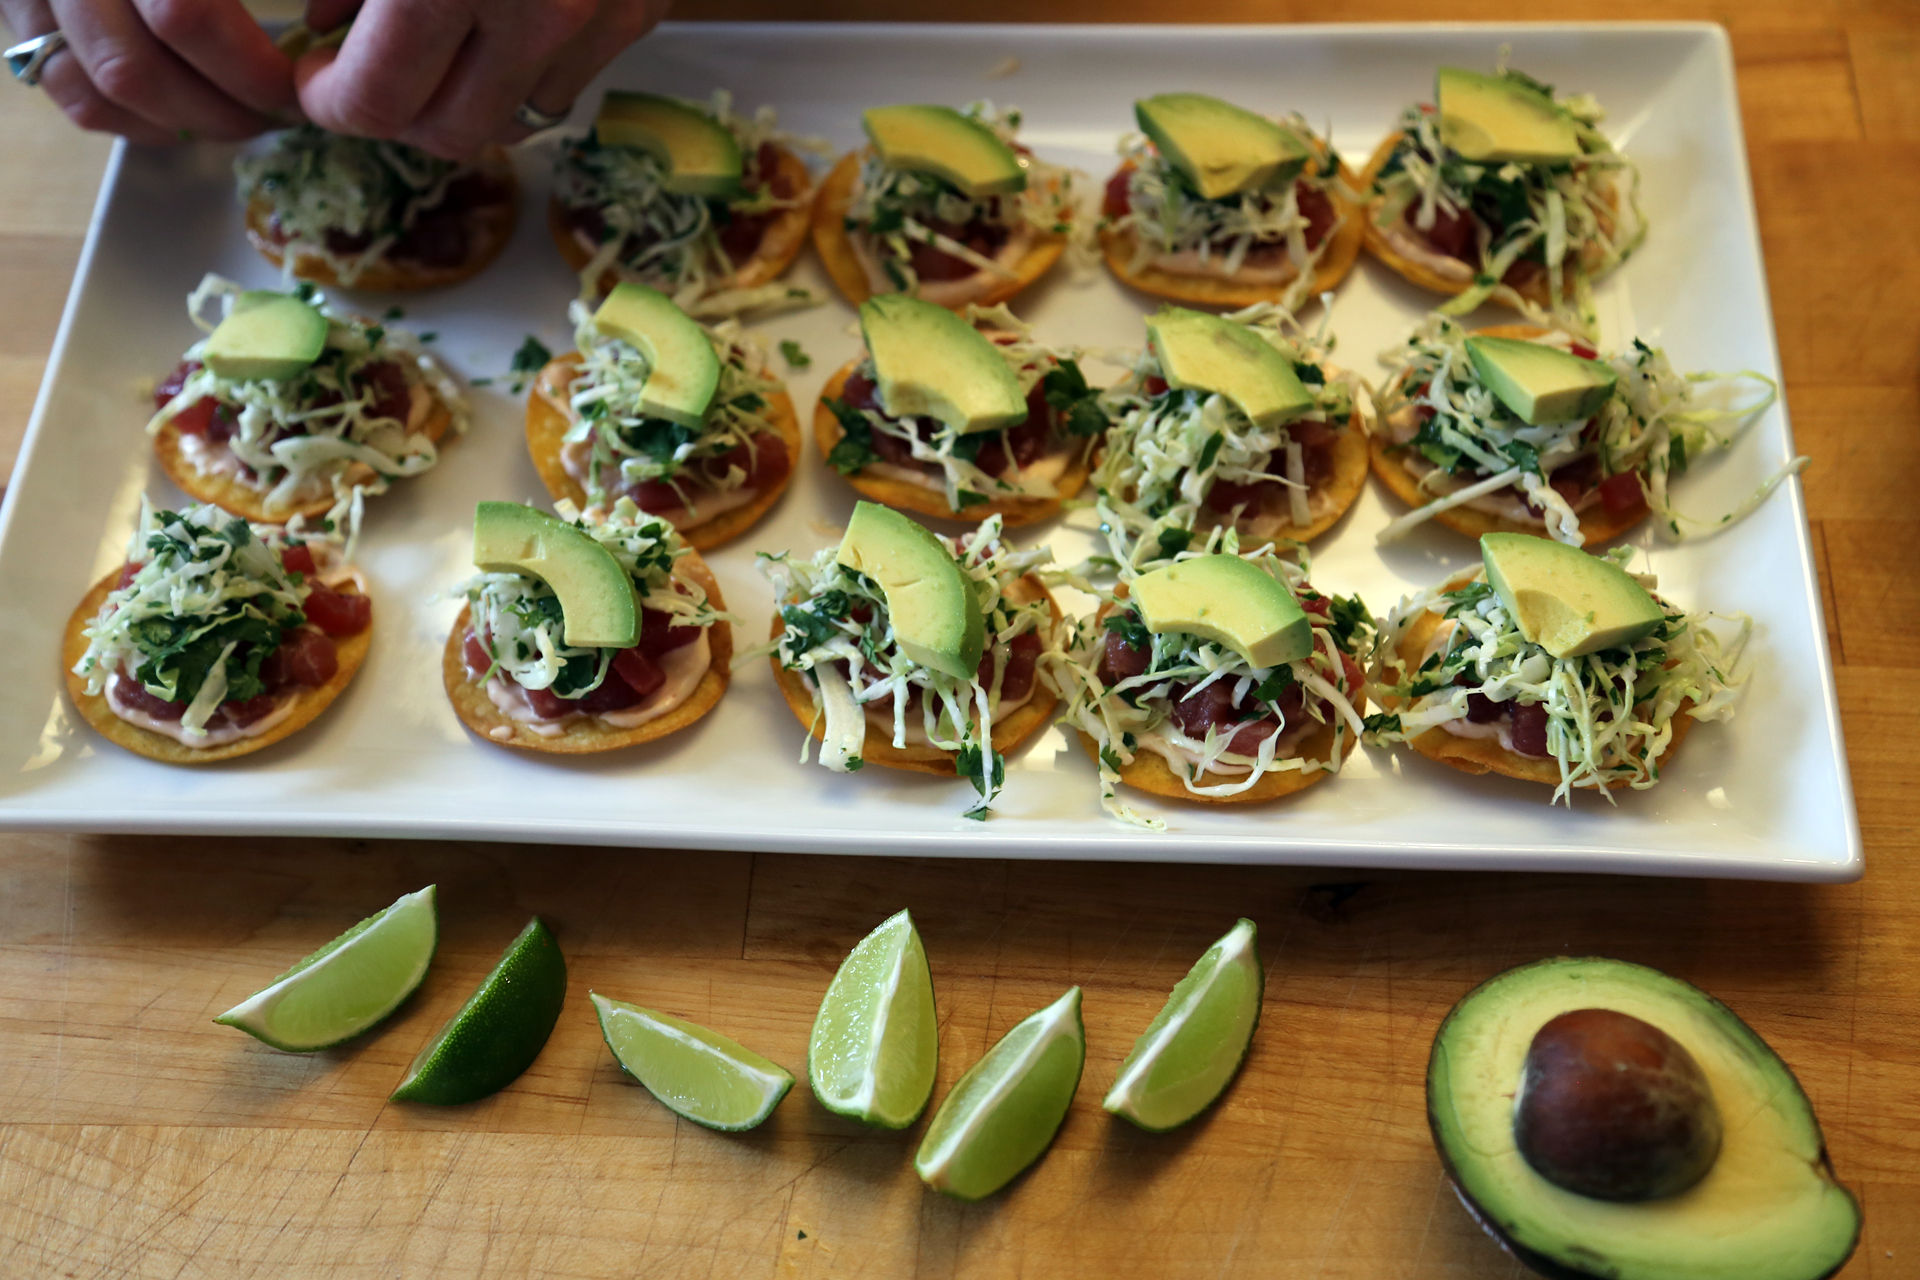 Add a slice of avocado to each tostada. Serve with the lime wedges alongside for squeezing.